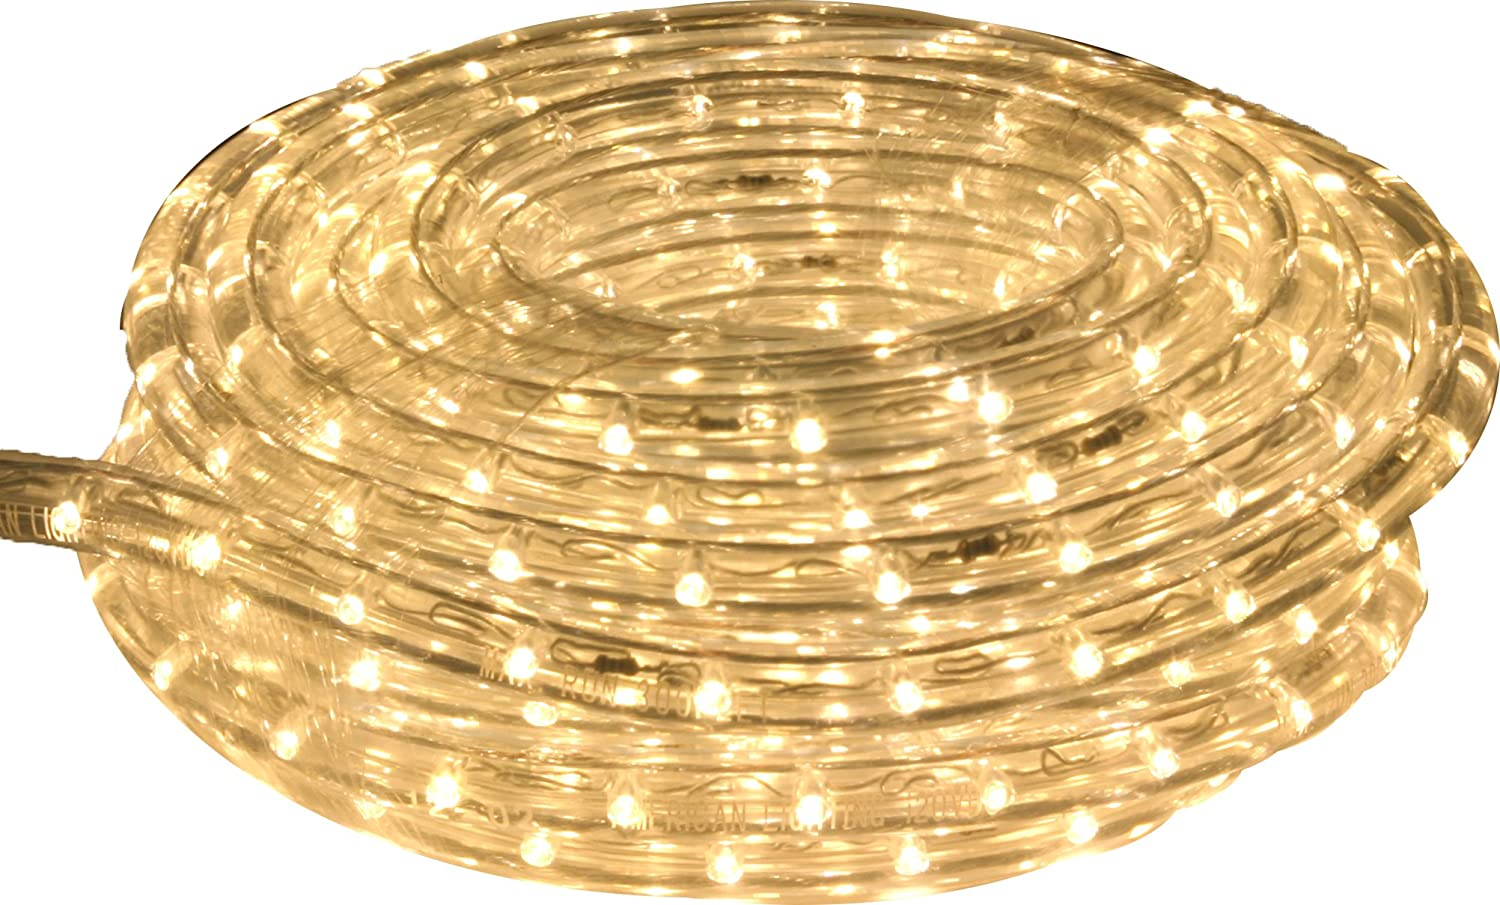 Amazon american lighting 15 foot warm white led flexbrite rope amazon american lighting 15 foot warm white led flexbrite rope light kit with mounting clips 120 volt 12 inch diameter lr led ww 15 home mozeypictures Choice Image